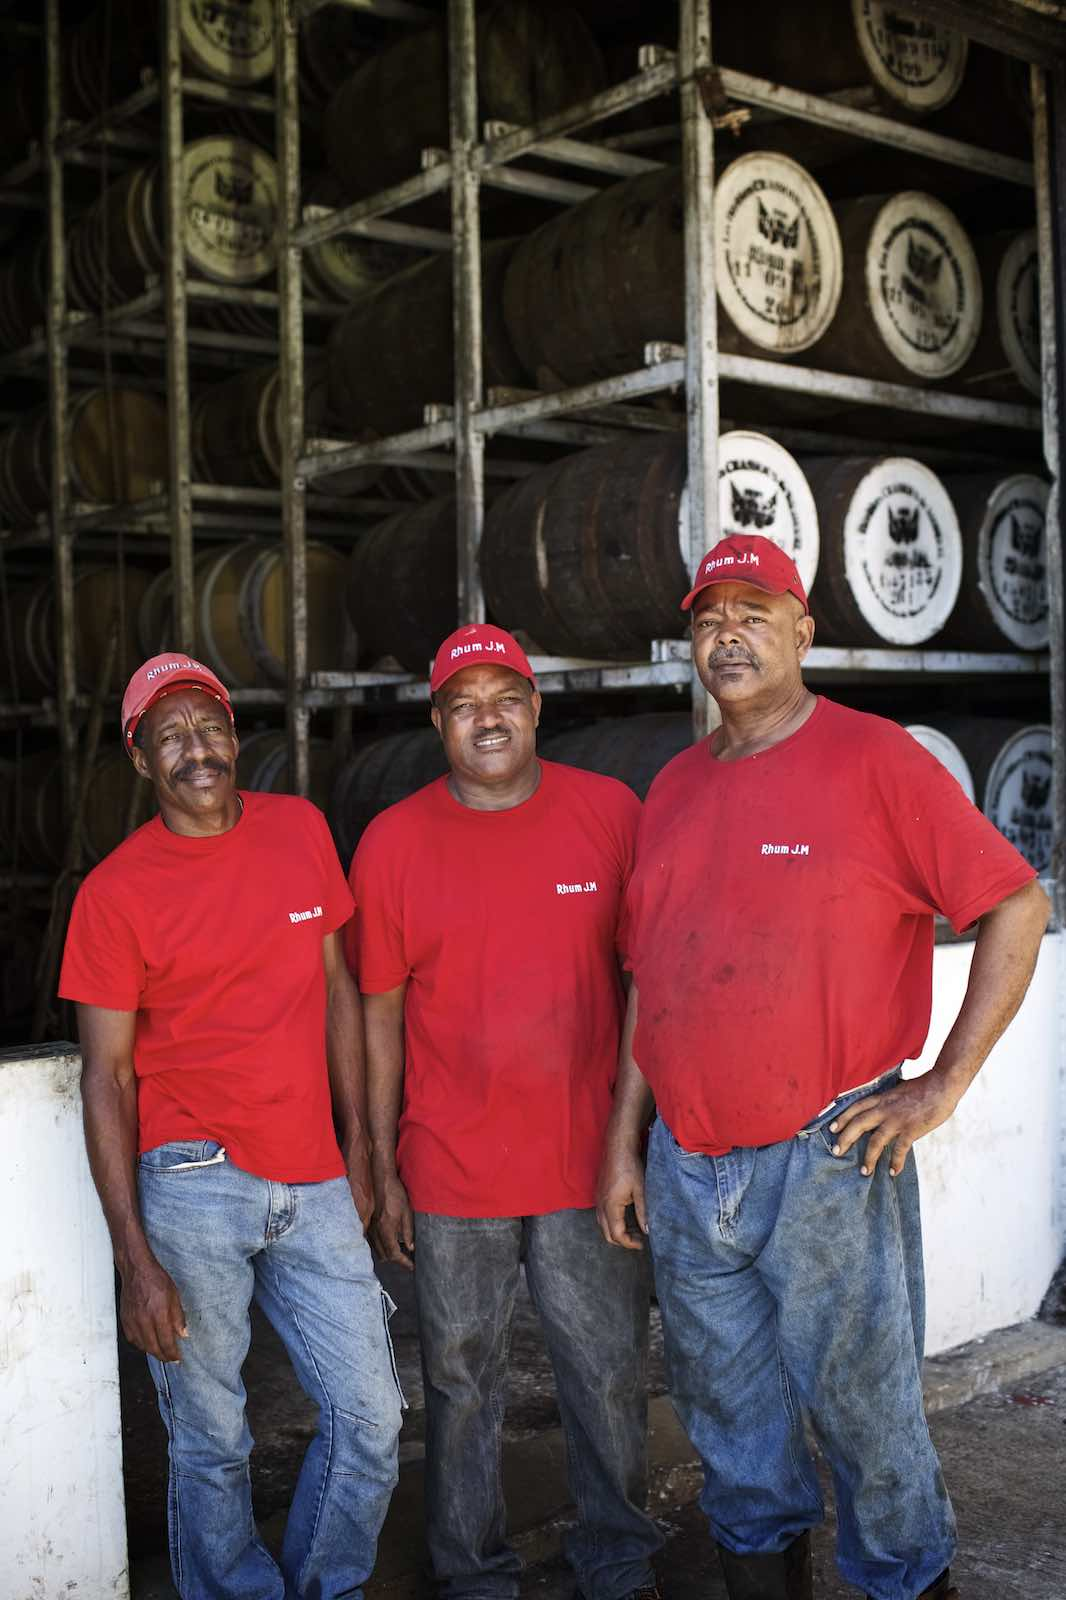 Jody Horton Photography - Workers red labeled caps and shirts standing against stacked wood barrels.